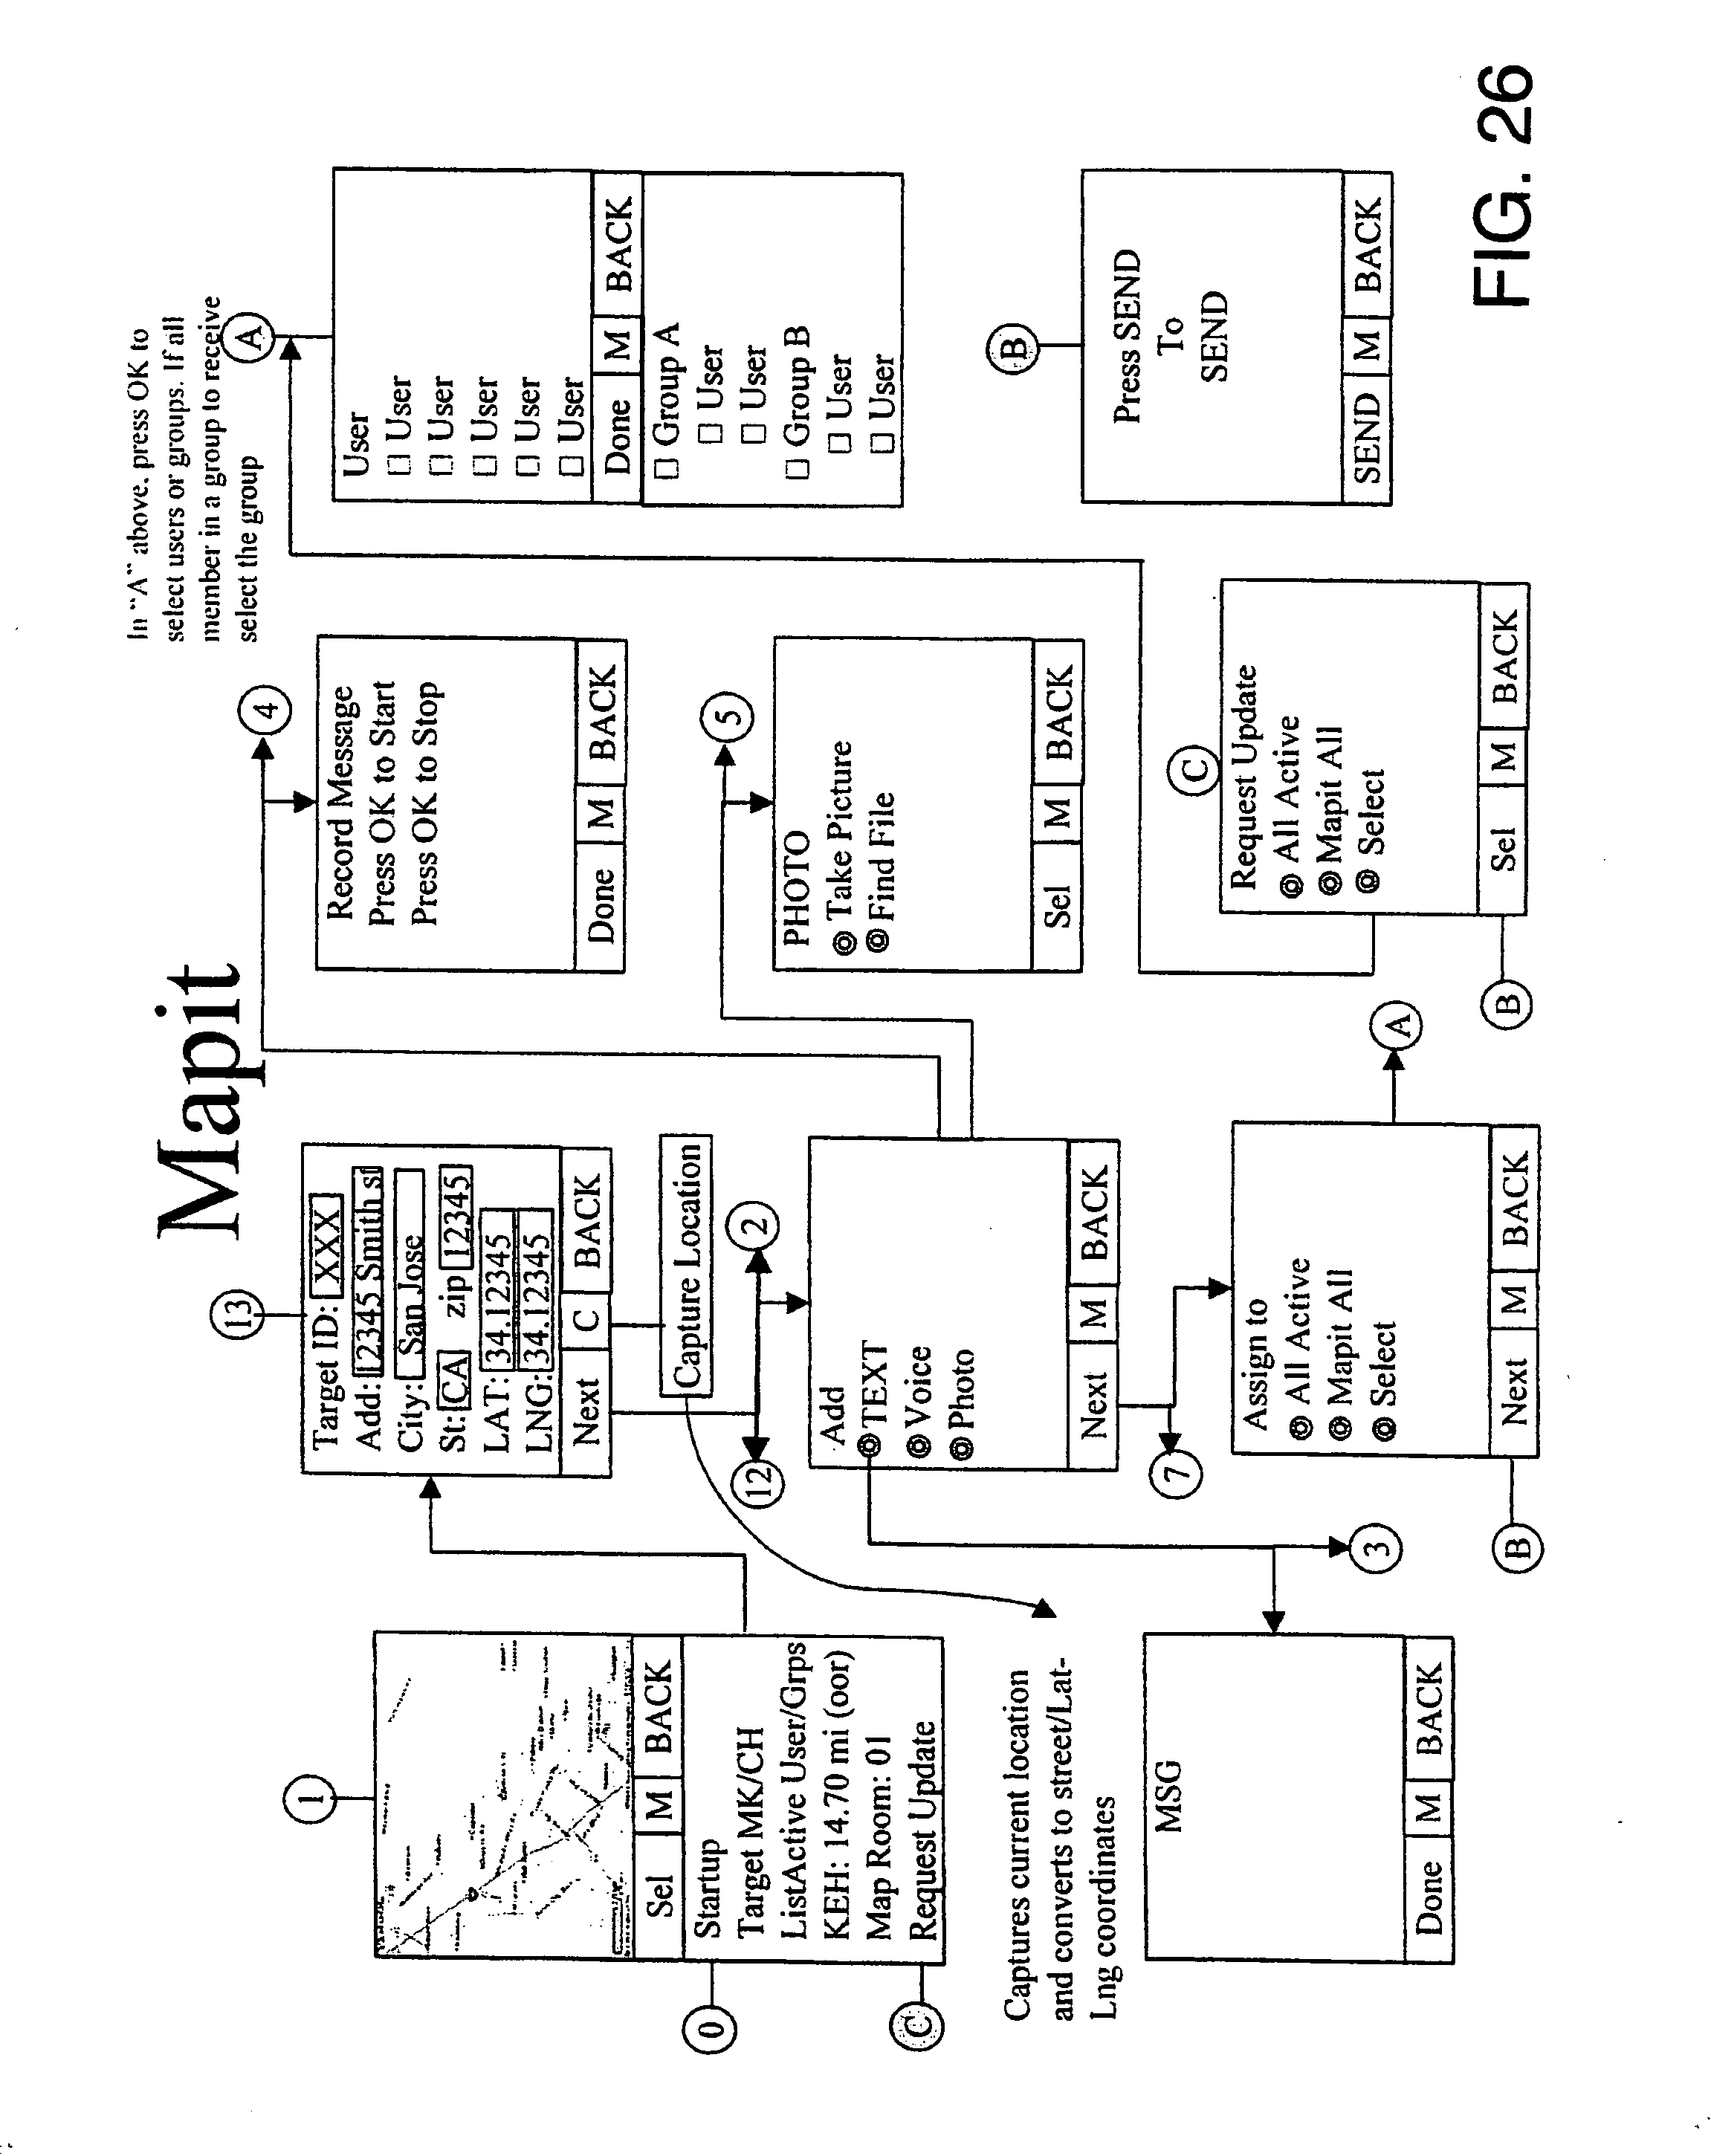 Us20060223518a1 location sharing and tracking using mobile phones us20060223518a1 location sharing and tracking using mobile phones or other wireless devices google patents biocorpaavc Gallery